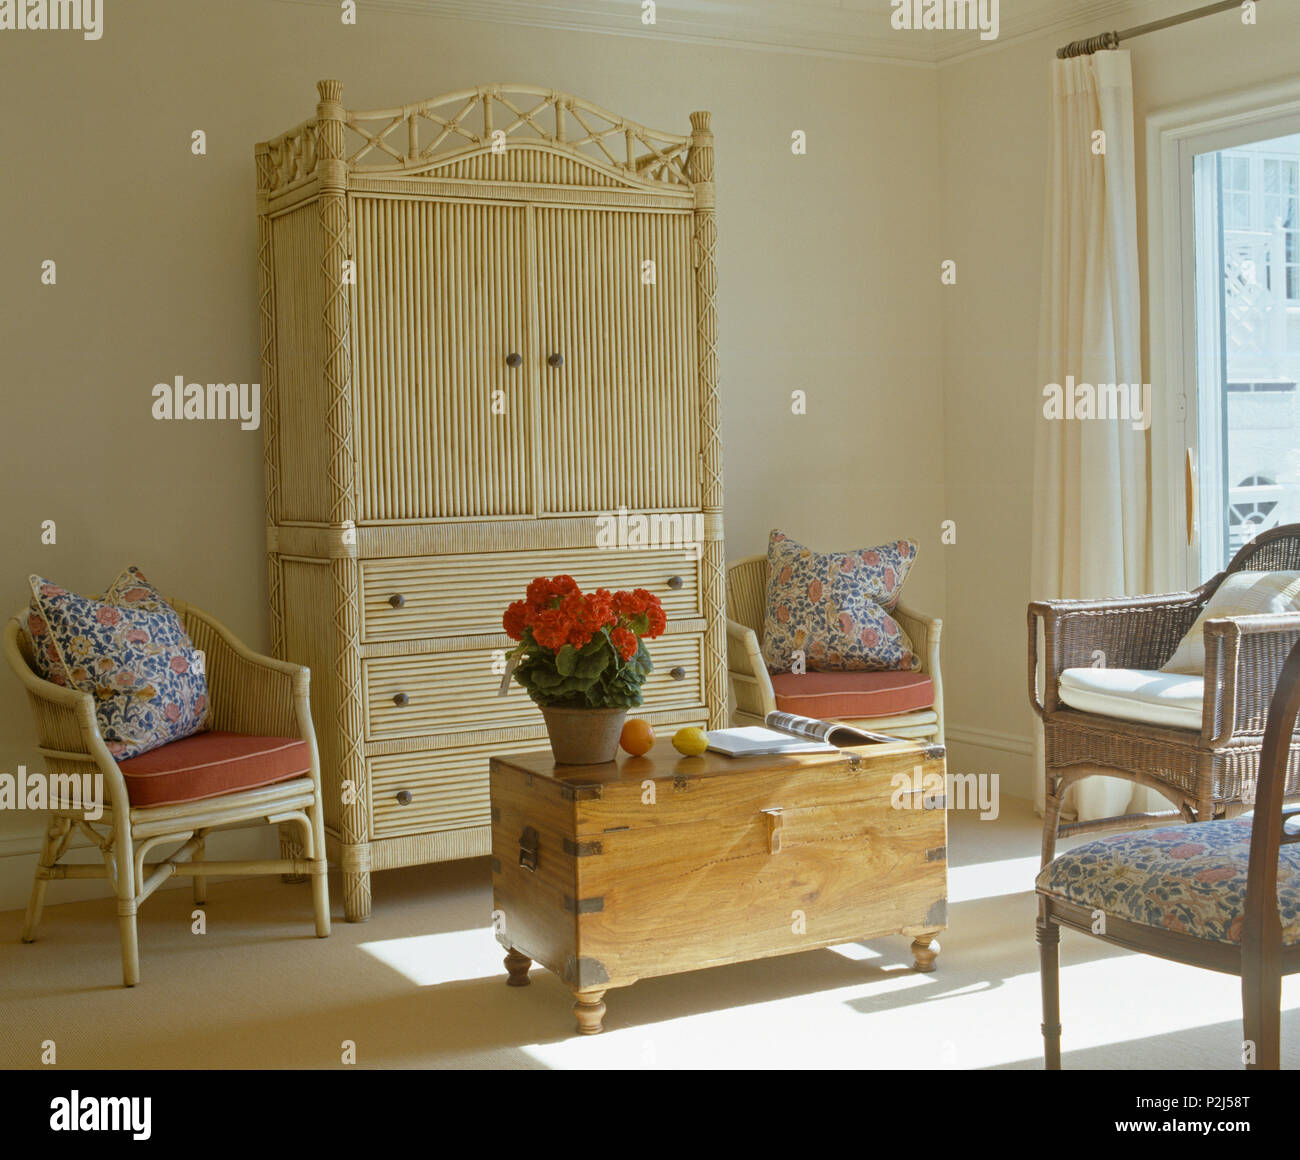 Cream bamboo secretaire cabinet and pine chest in corner of sunlit bedroom with cane armchairs with floral cushions - Stock Image